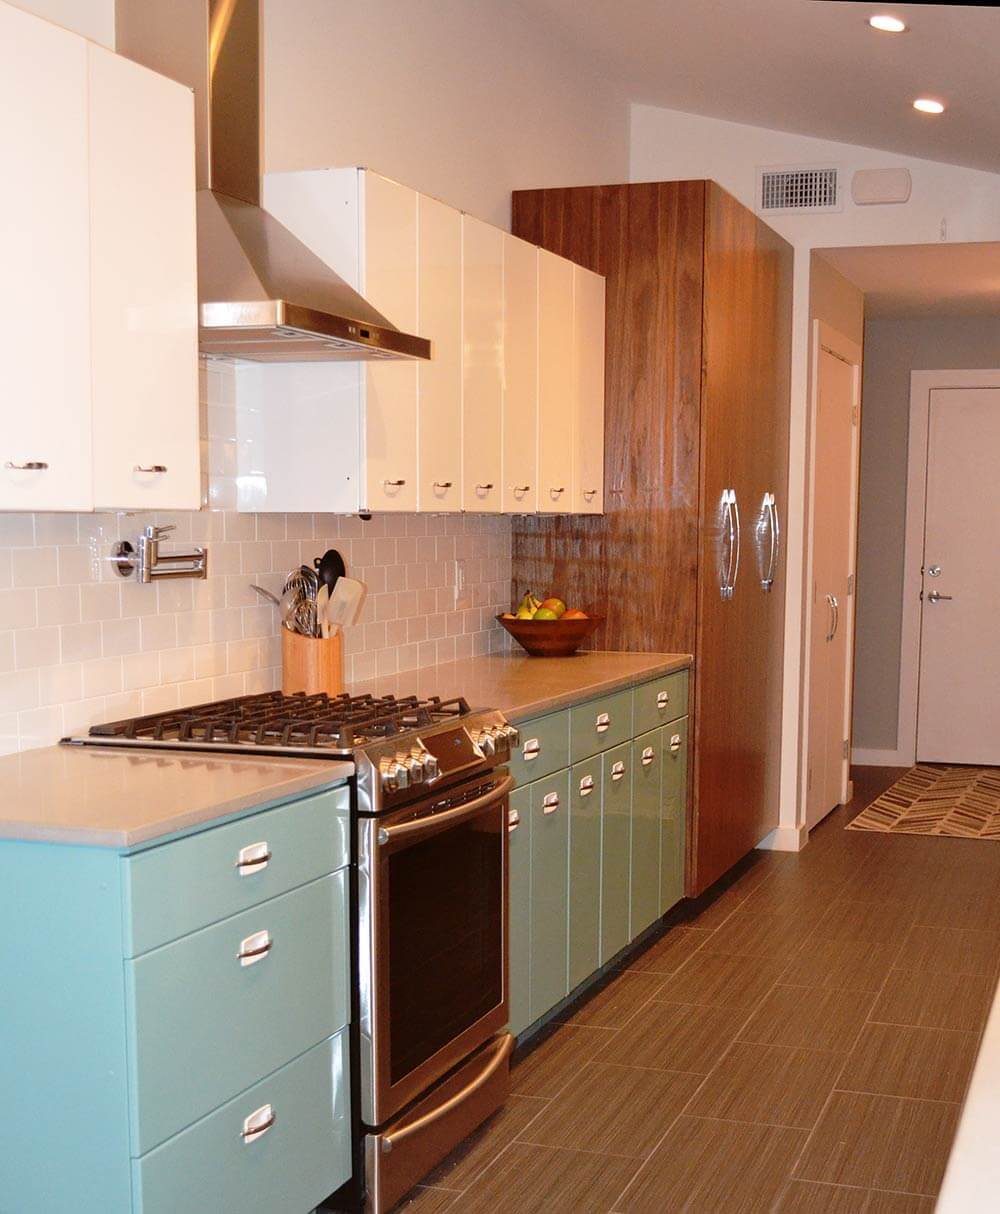 retro modern kitchen sam has a great experience with powder coating vintage steel kitchen cabinets retro renovation 8167